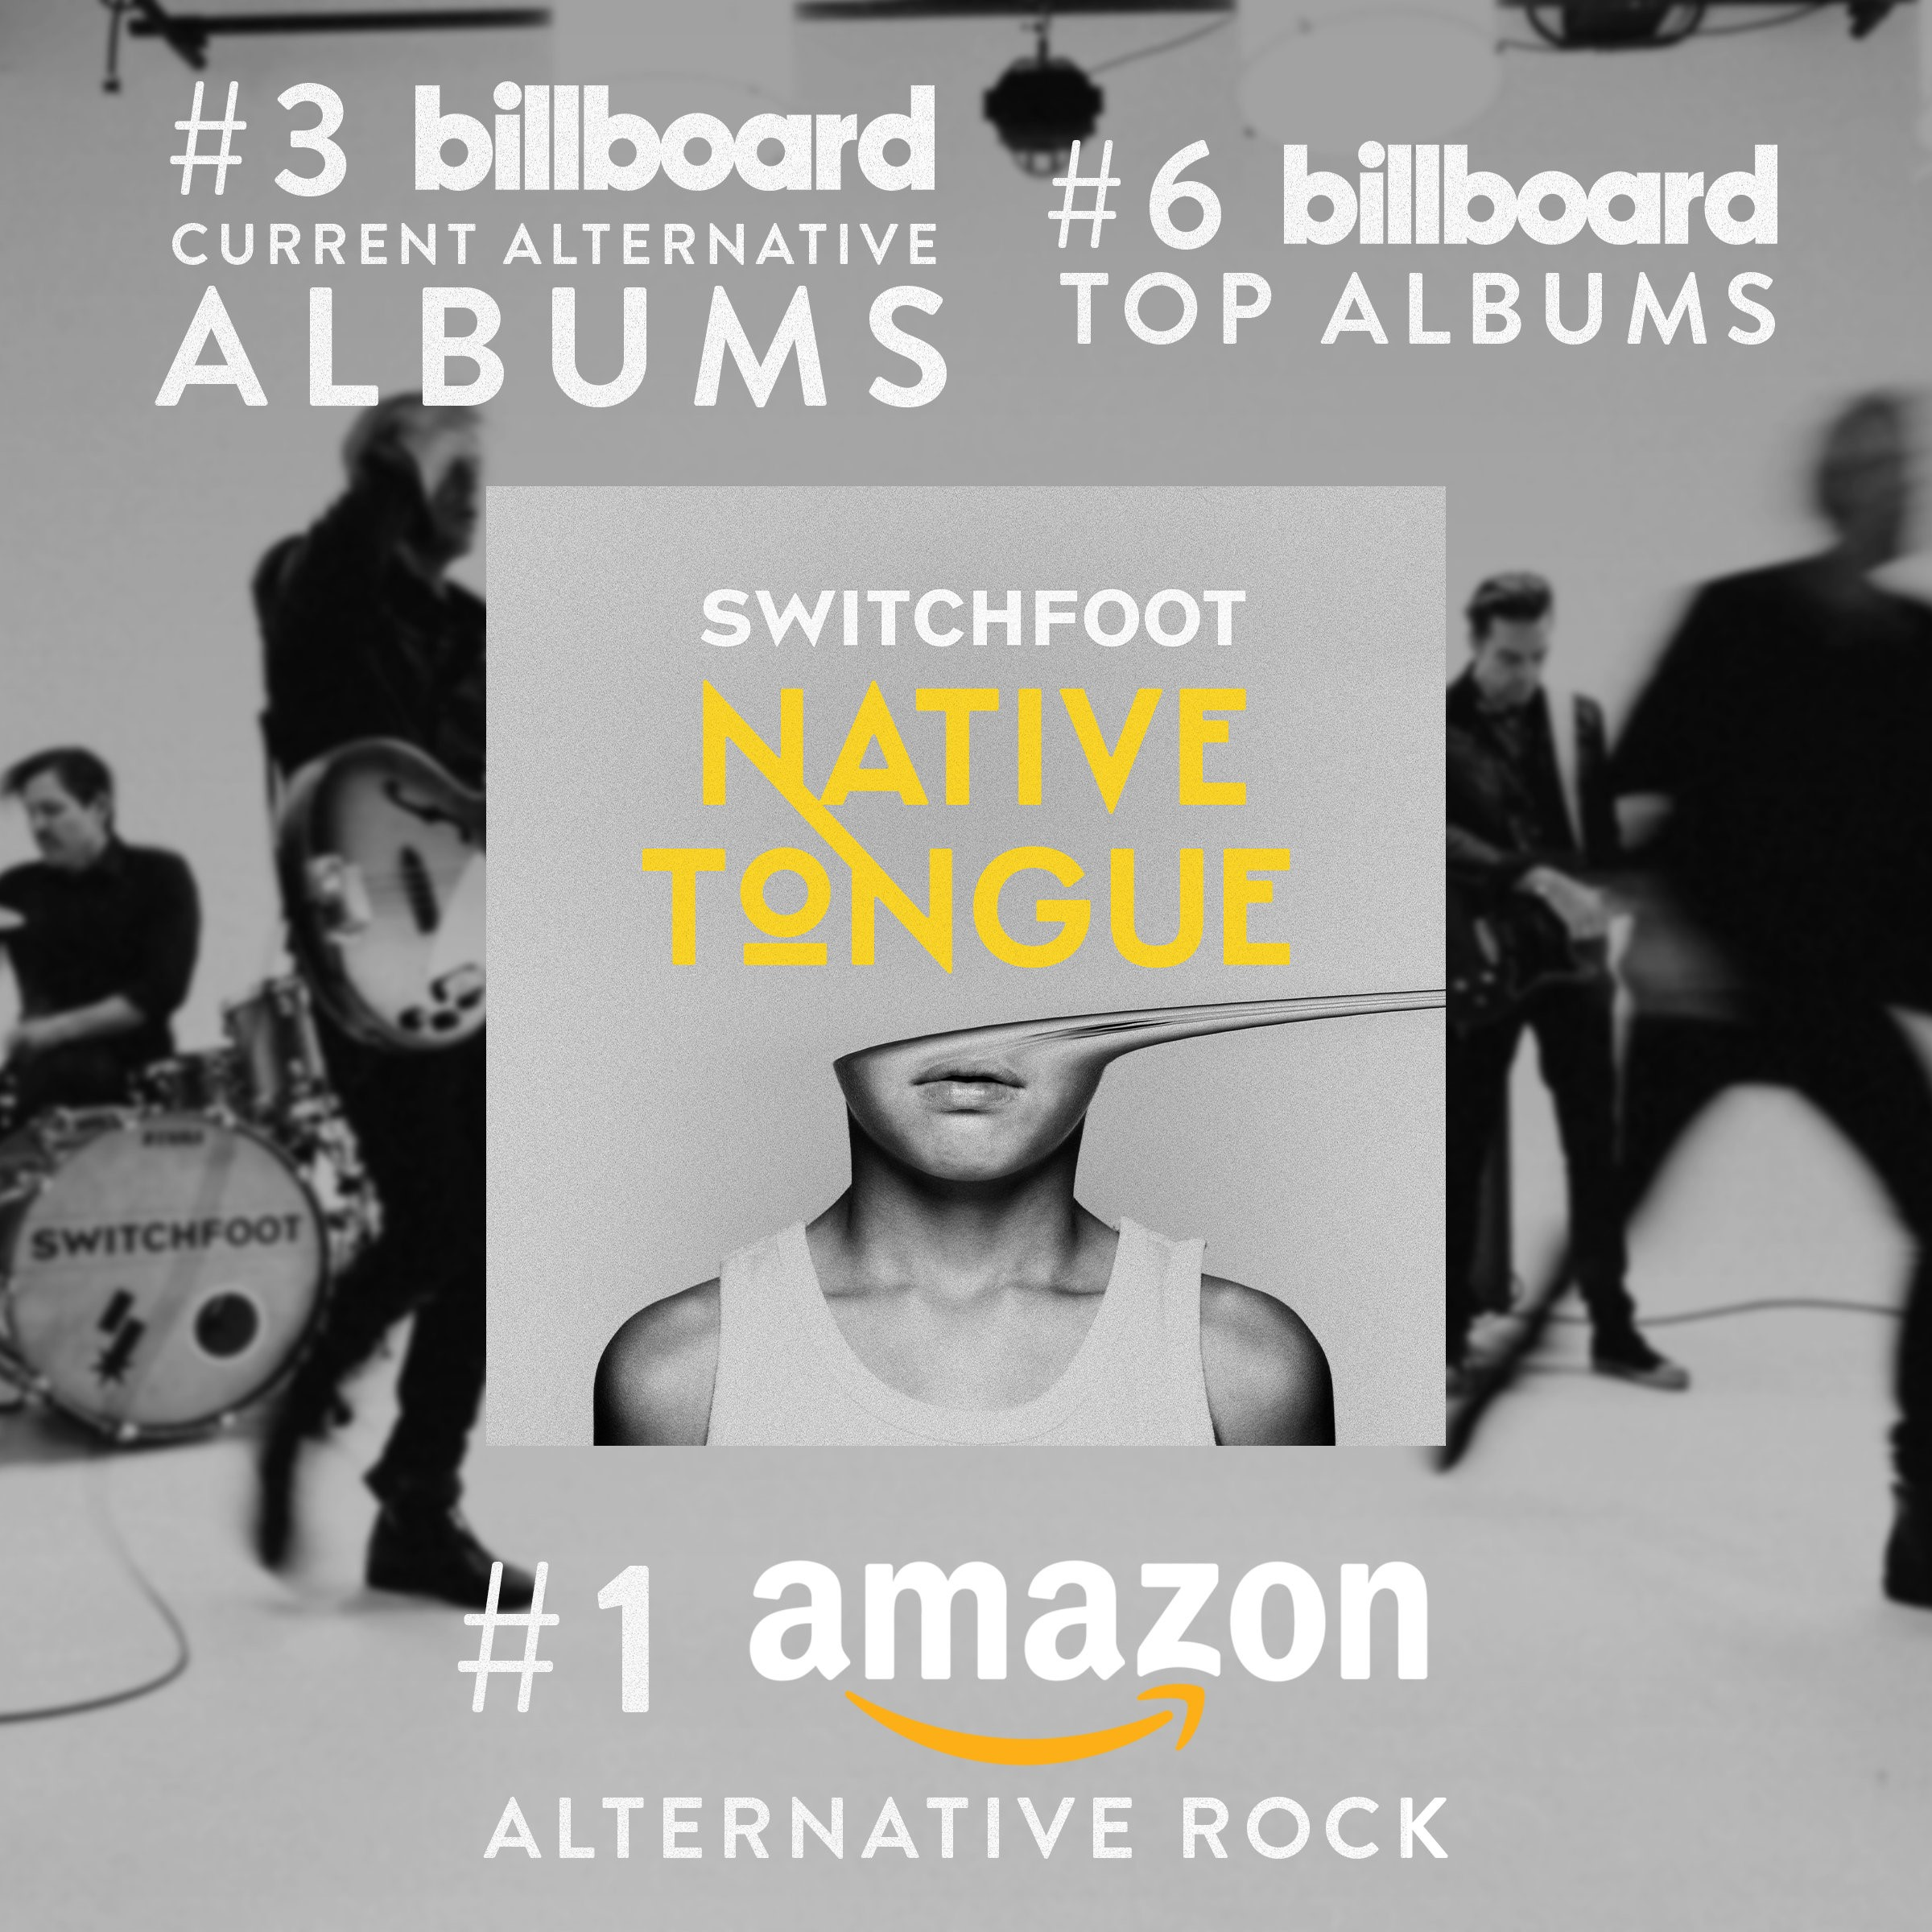 SWITCHFOOT's 'Native Tongue' Makes Impressive Chart Debut – tour dates